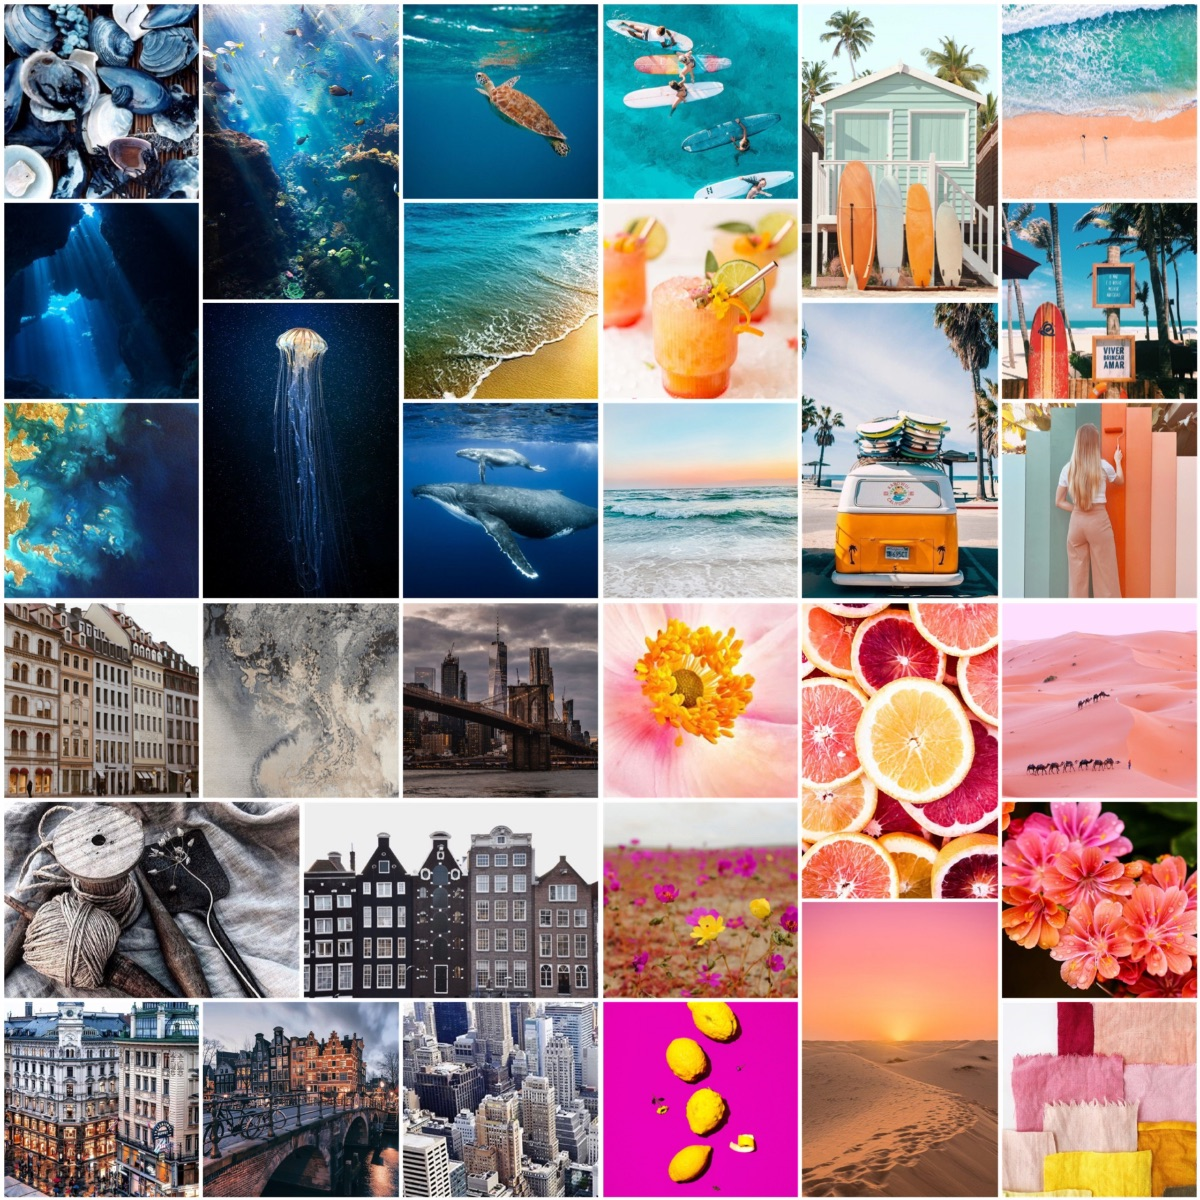 mood boards of the chosen color themes from blues to pinks to greys